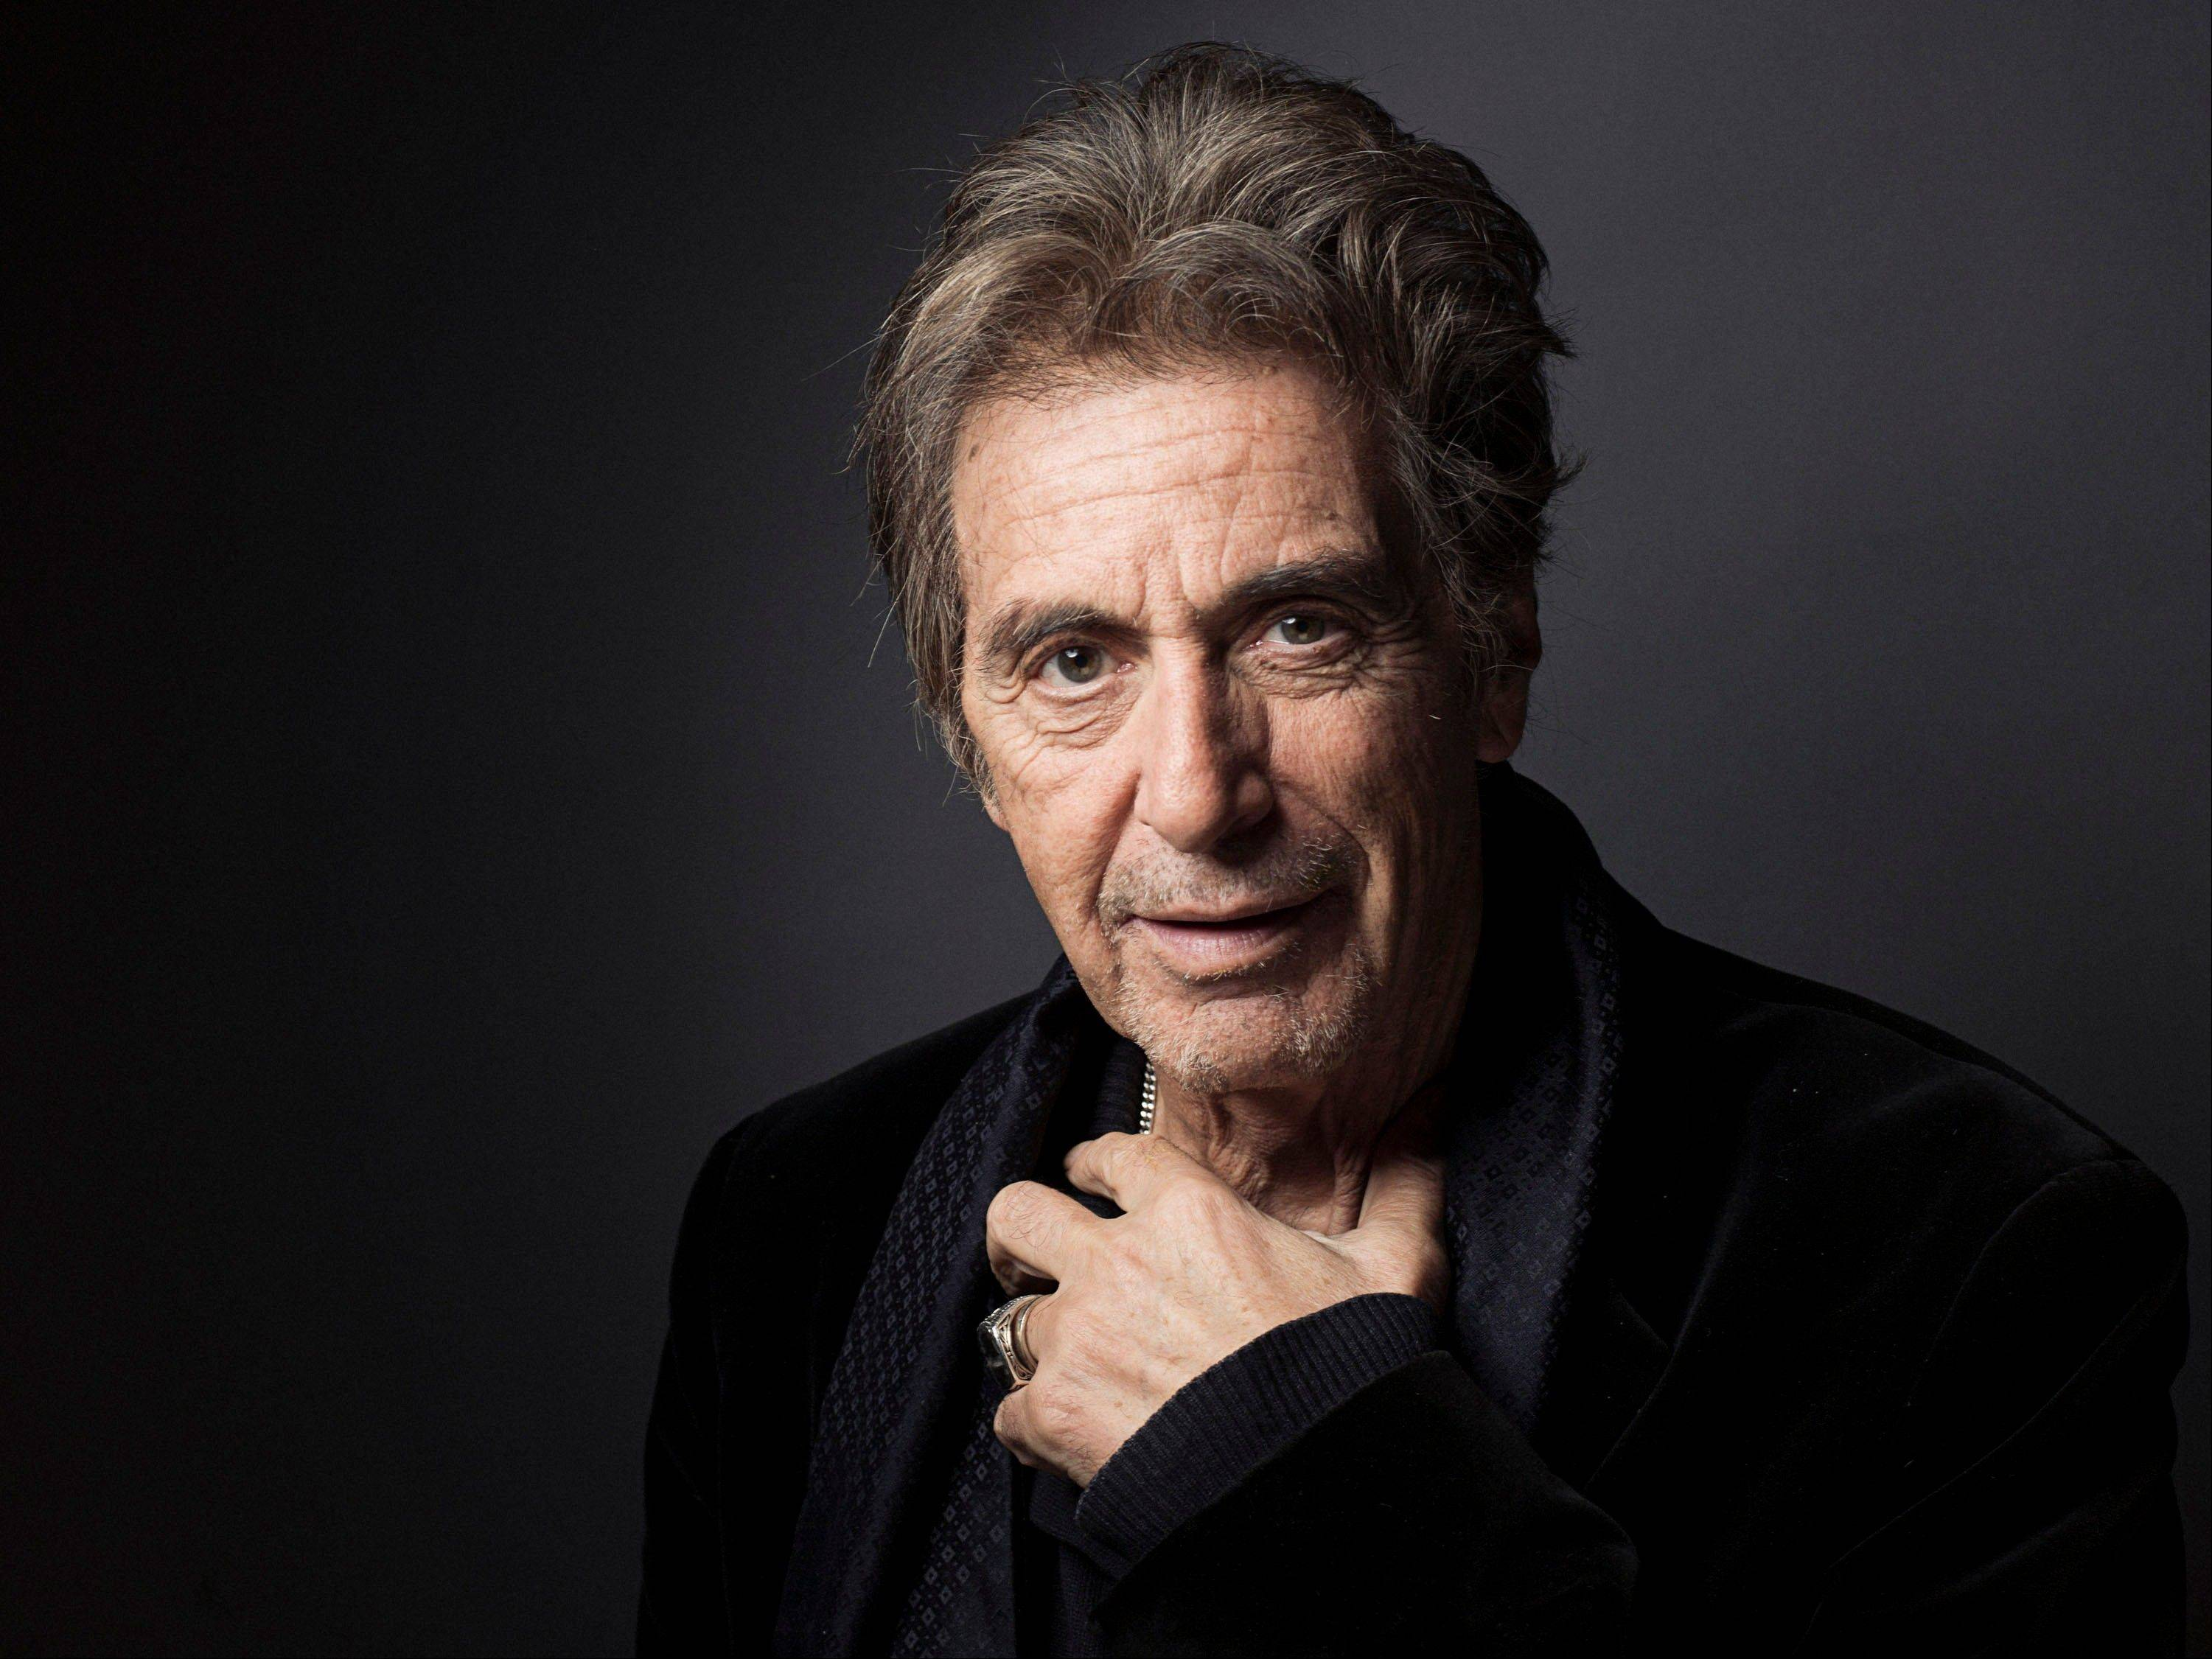 Al Pacino will play Joe Paterno in a movie about the late Penn State football coach. Brian De Palma will direct �Happy Valley,� the tentative title of the film, based on Joe Posnanski�s best-seller �Paterno.�